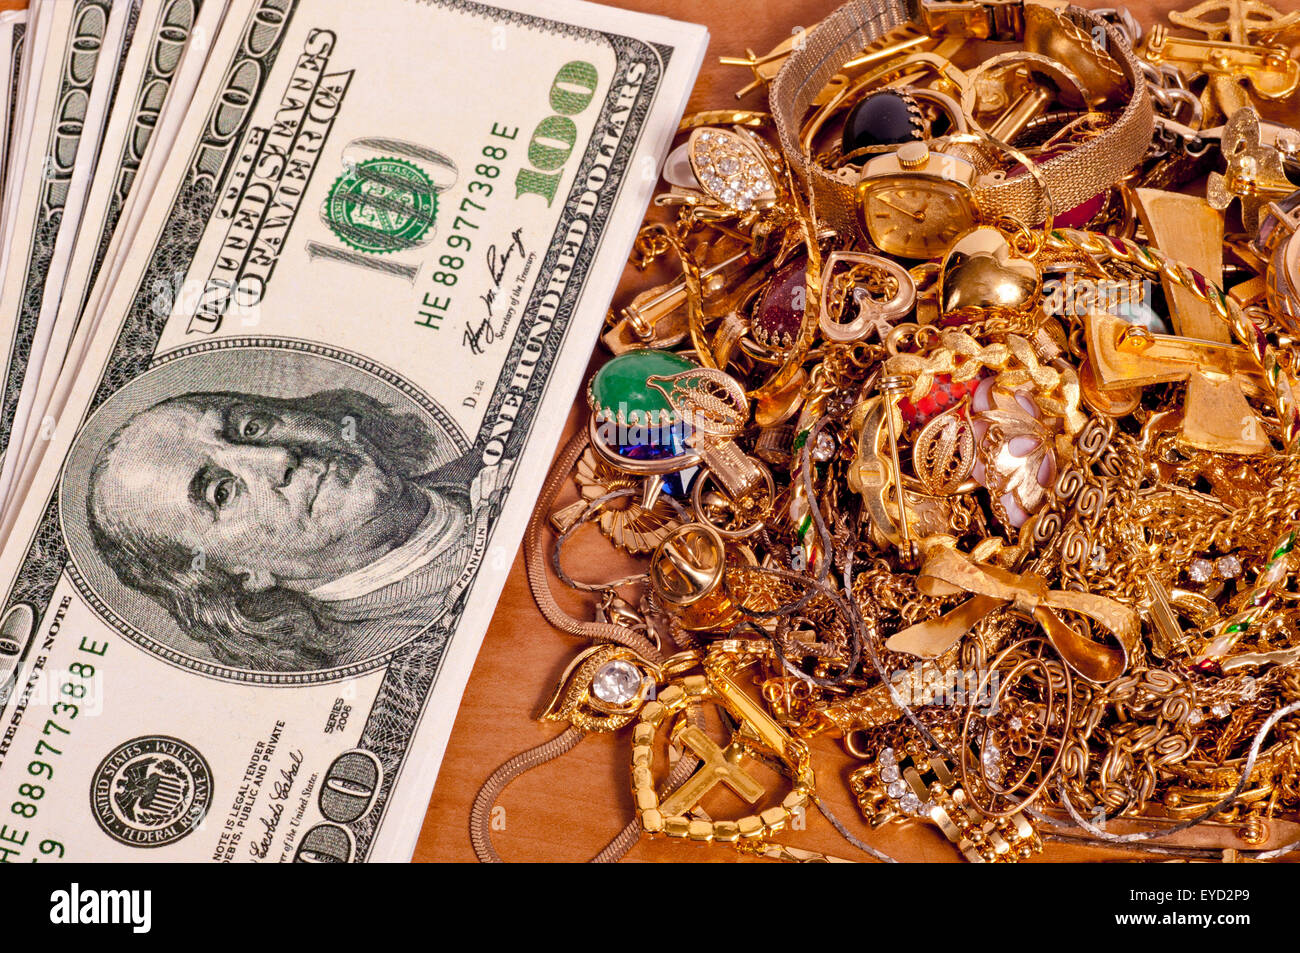 Make money selling your unwanted gold and jewelry pieces. - Stock Image